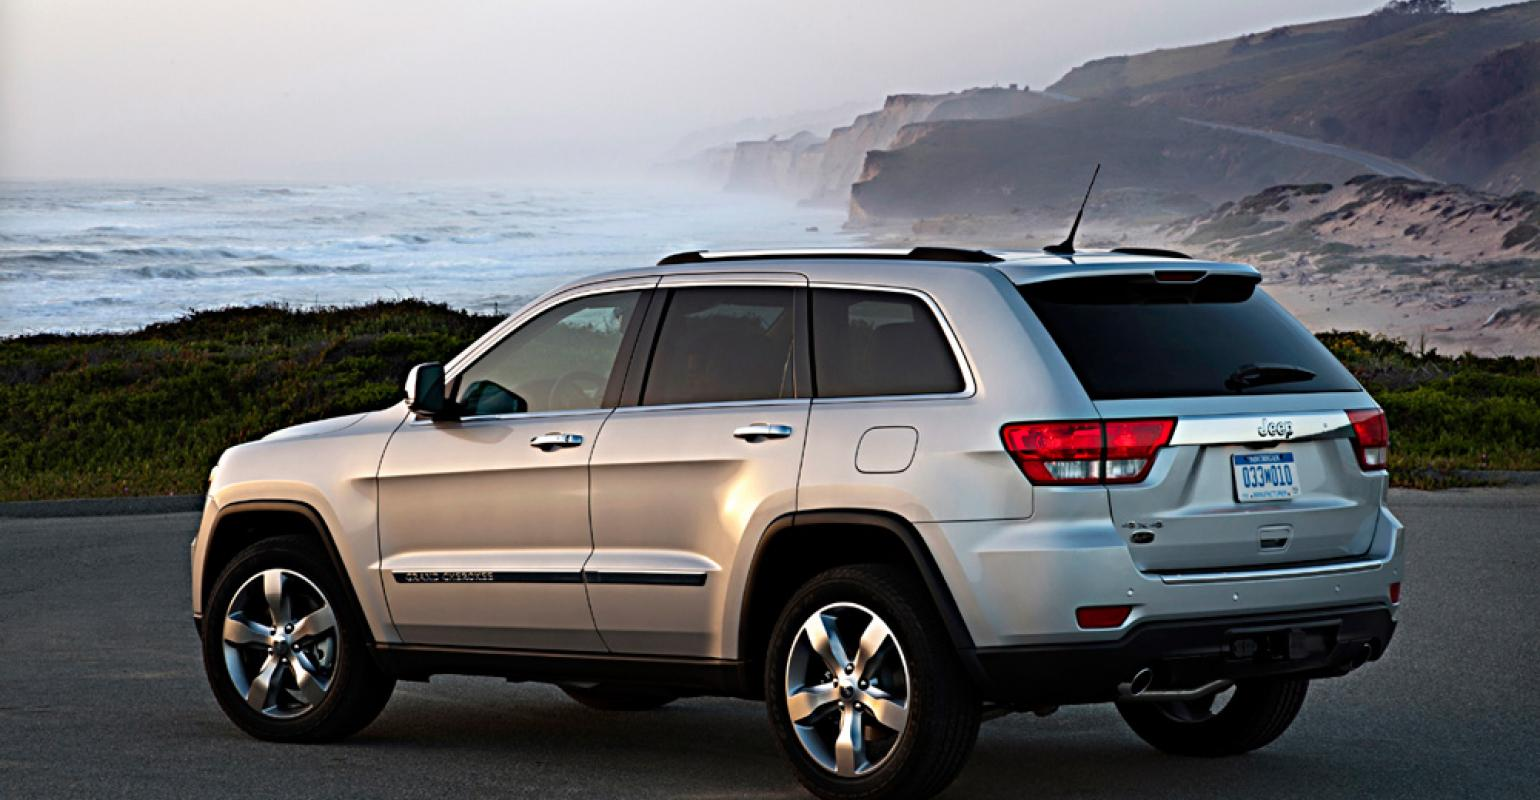 U S  Light-Vehicle Inventory Solid for Now After Sales Surge | WardsAuto